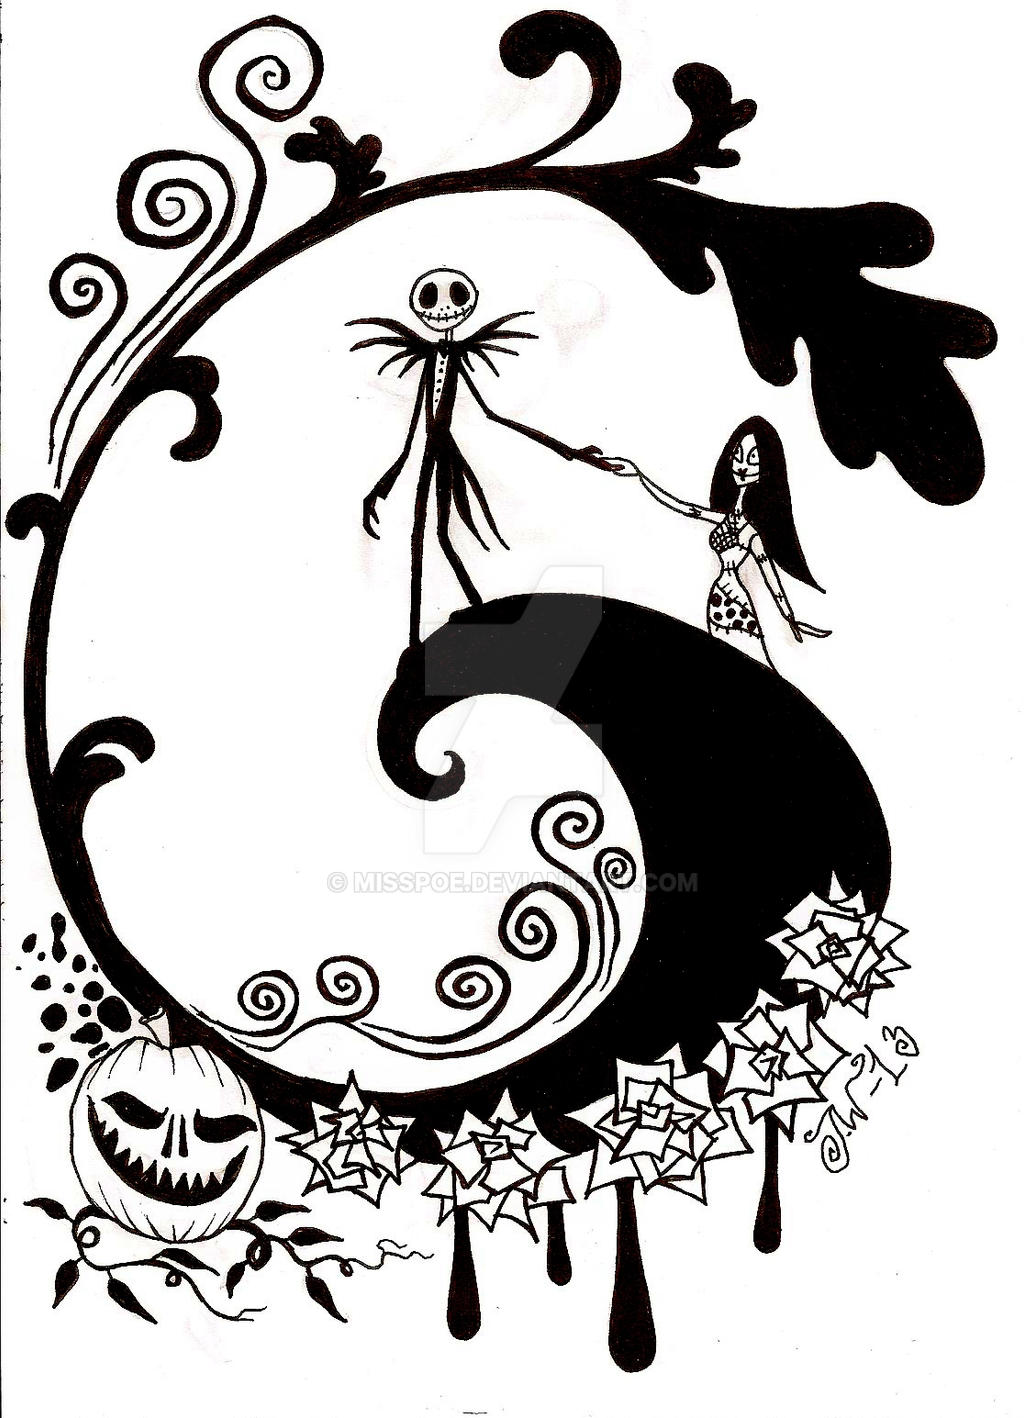 A nightmare before christmas coloring pages - The Nightmare Before Christmas By Misspoe On Deviantart